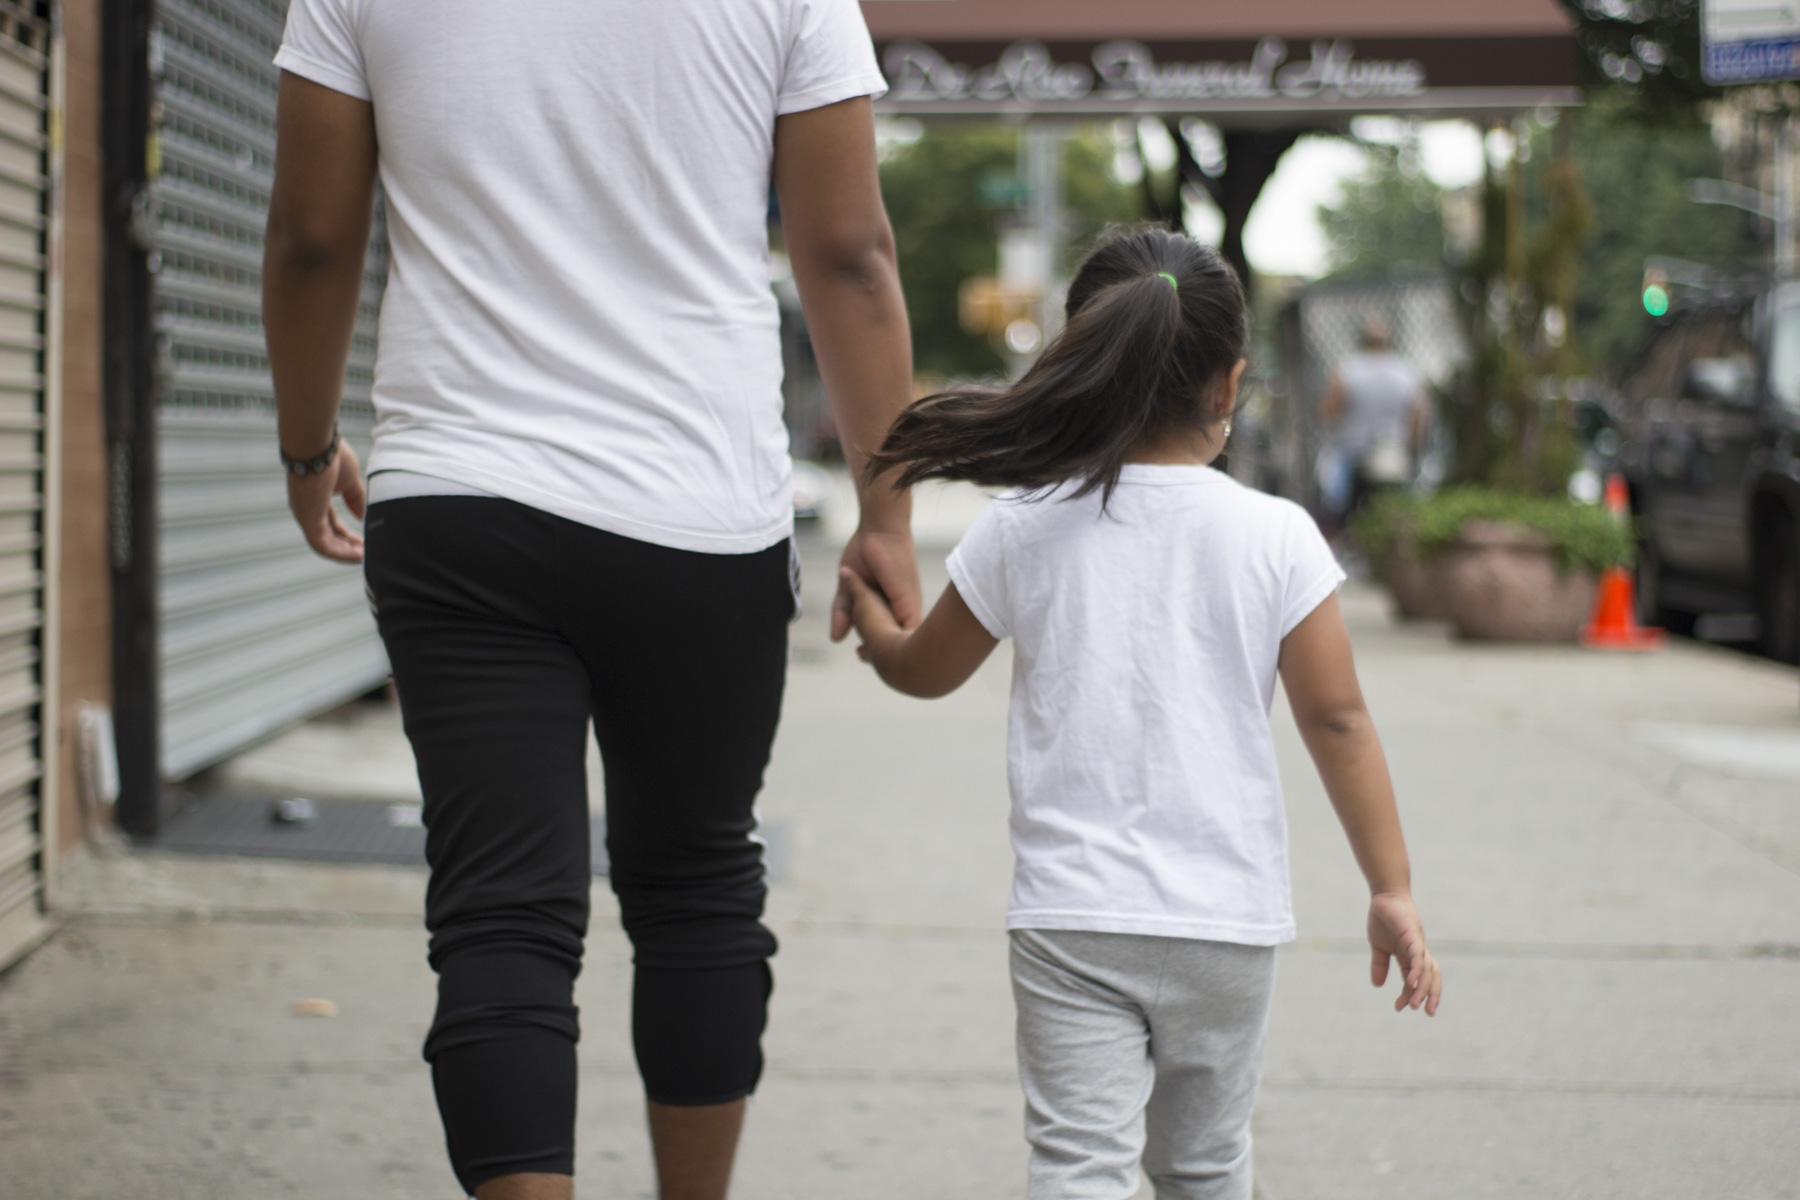 Carlos walks his younger sister to school. August 22, 2017